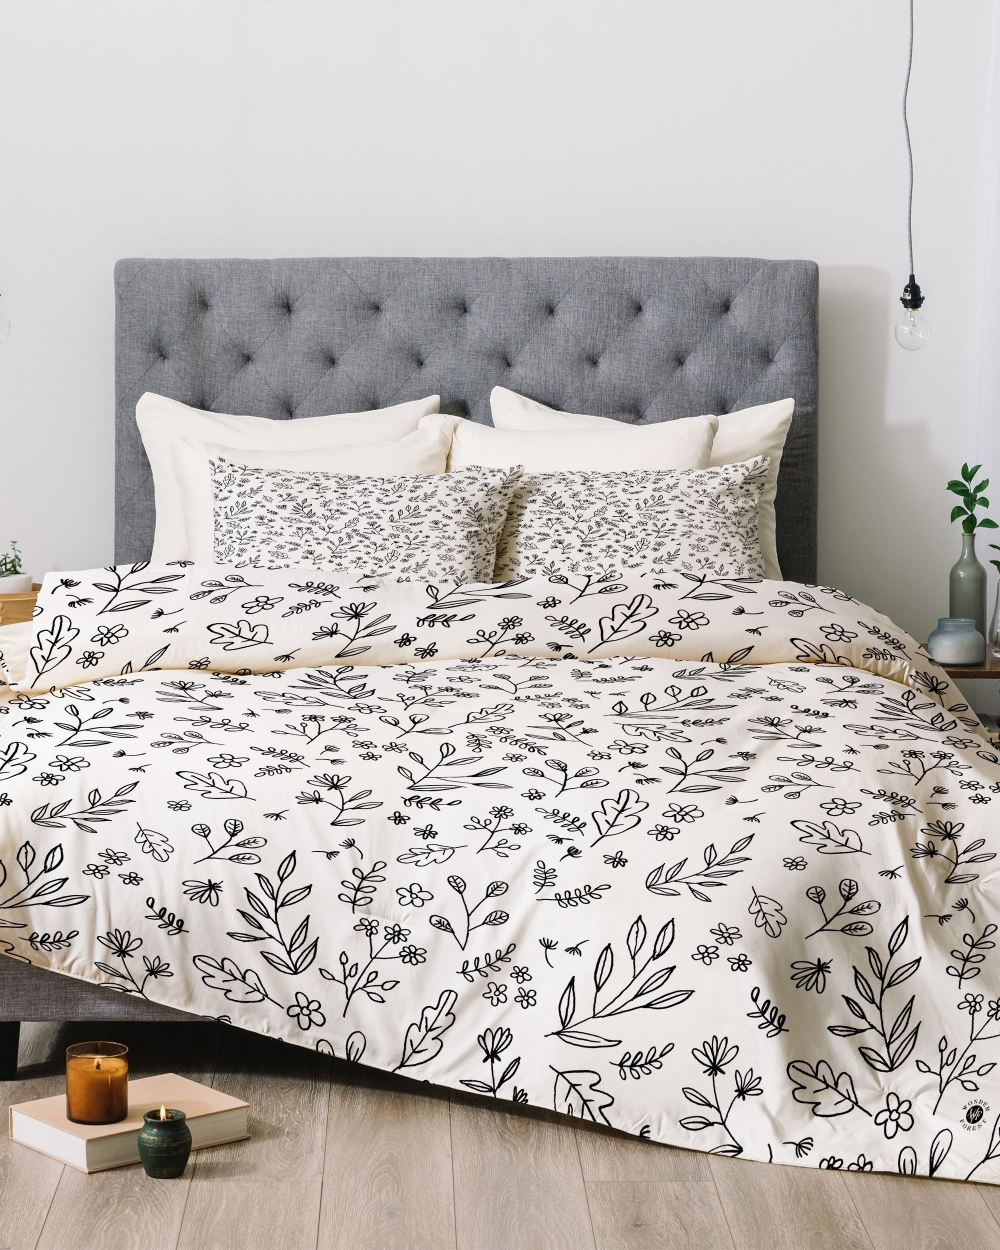 Floral Sketches Comforter by Wonder Forest